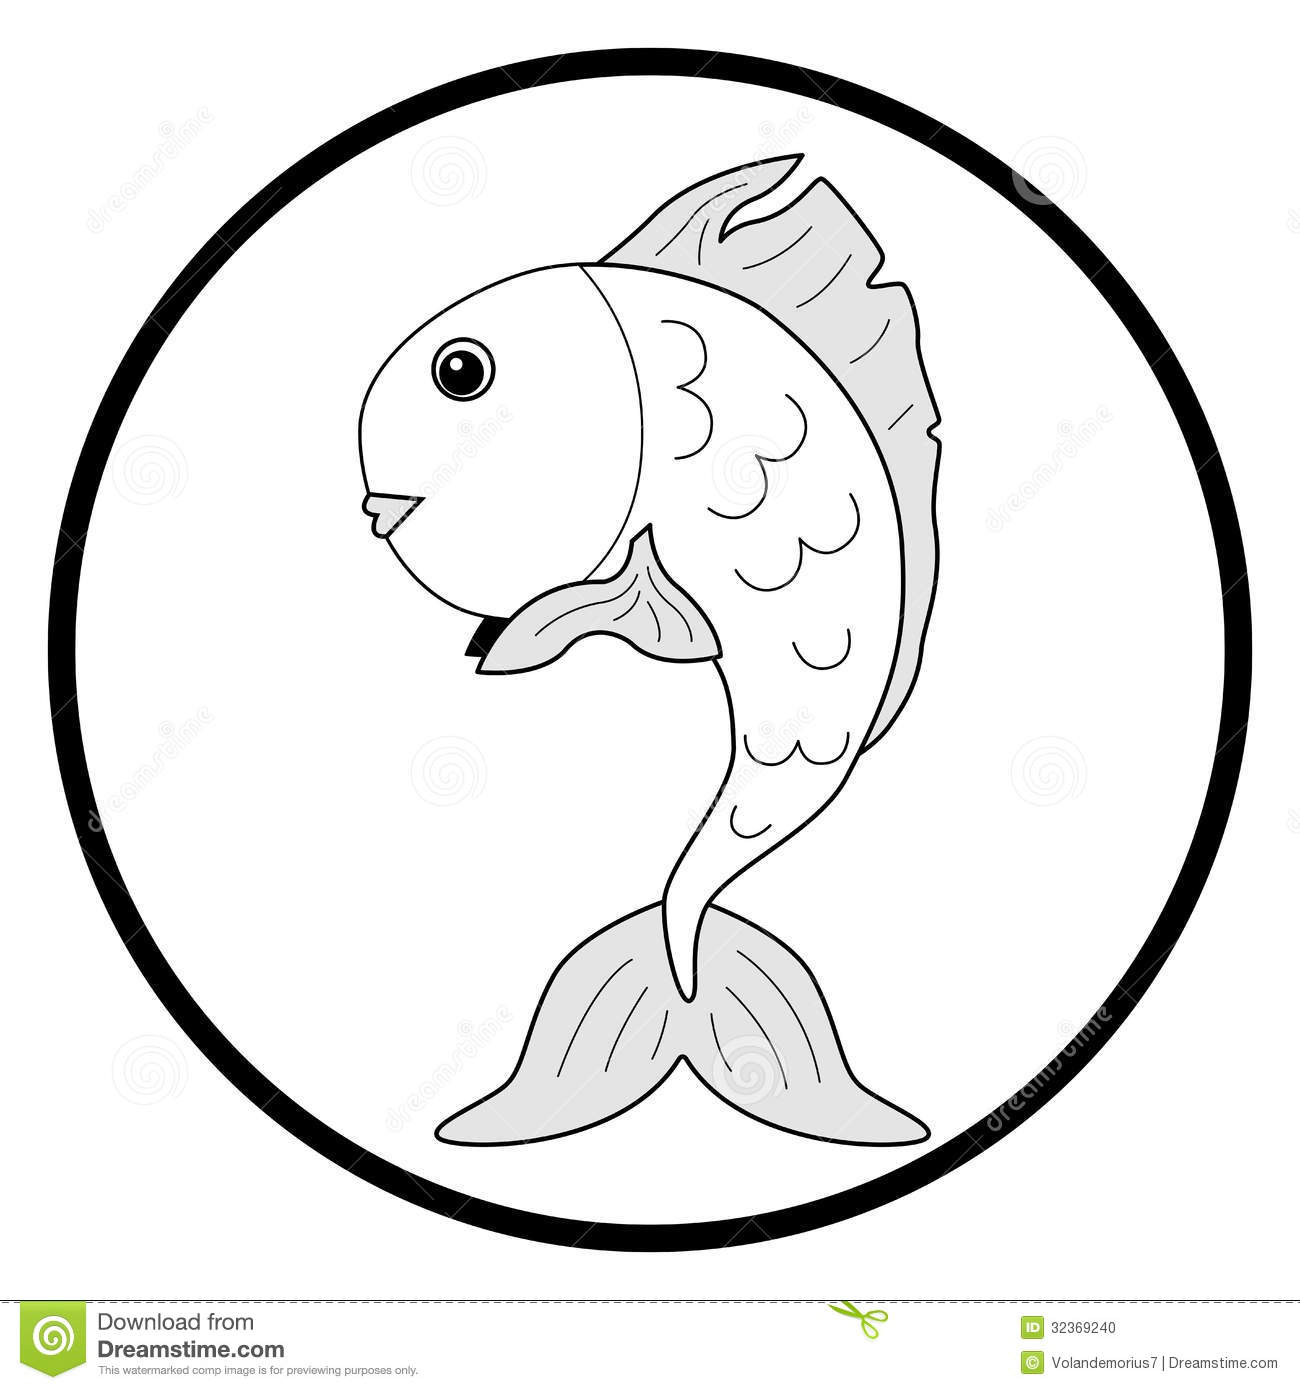 32  Best Goldfish Clipart Black And for Goldfish Clipart Black And White  585hul